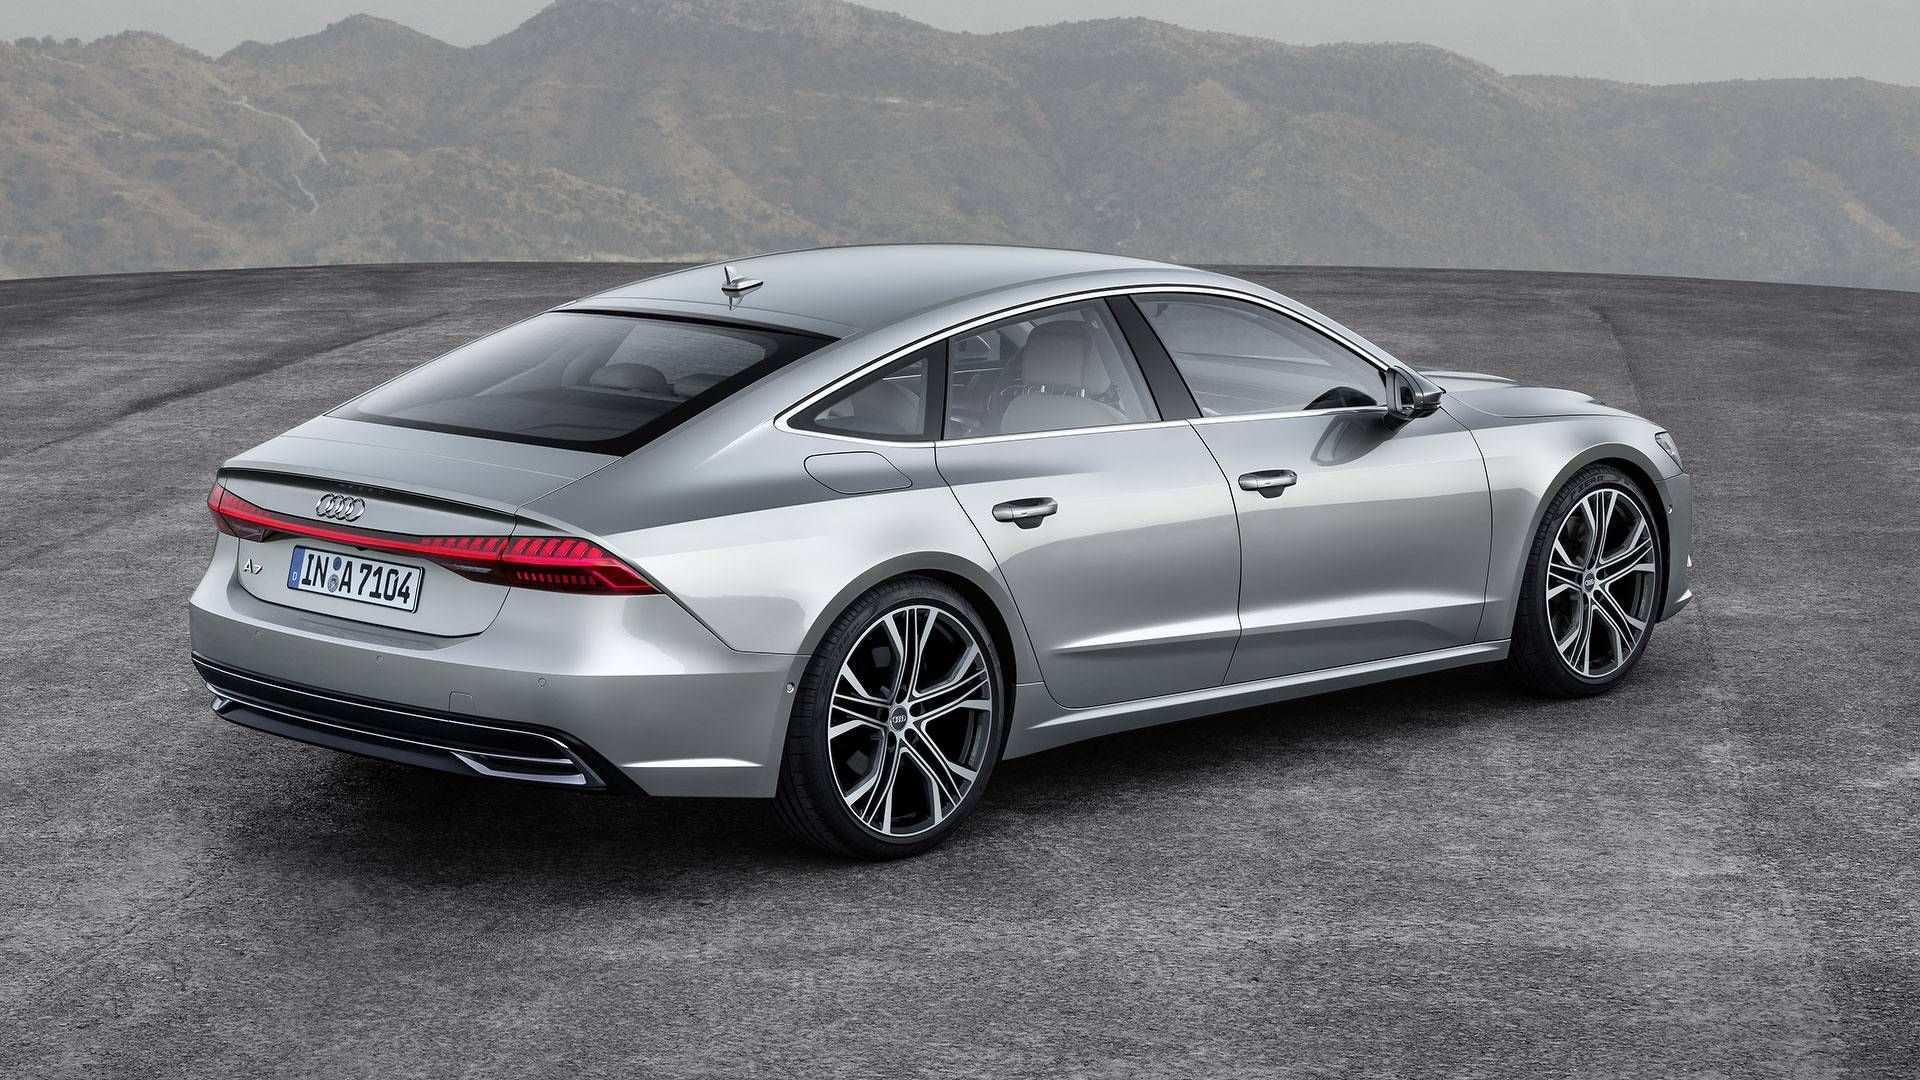 54 All New Linha Audi 2019 New Review New Review with Linha Audi 2019 New Review